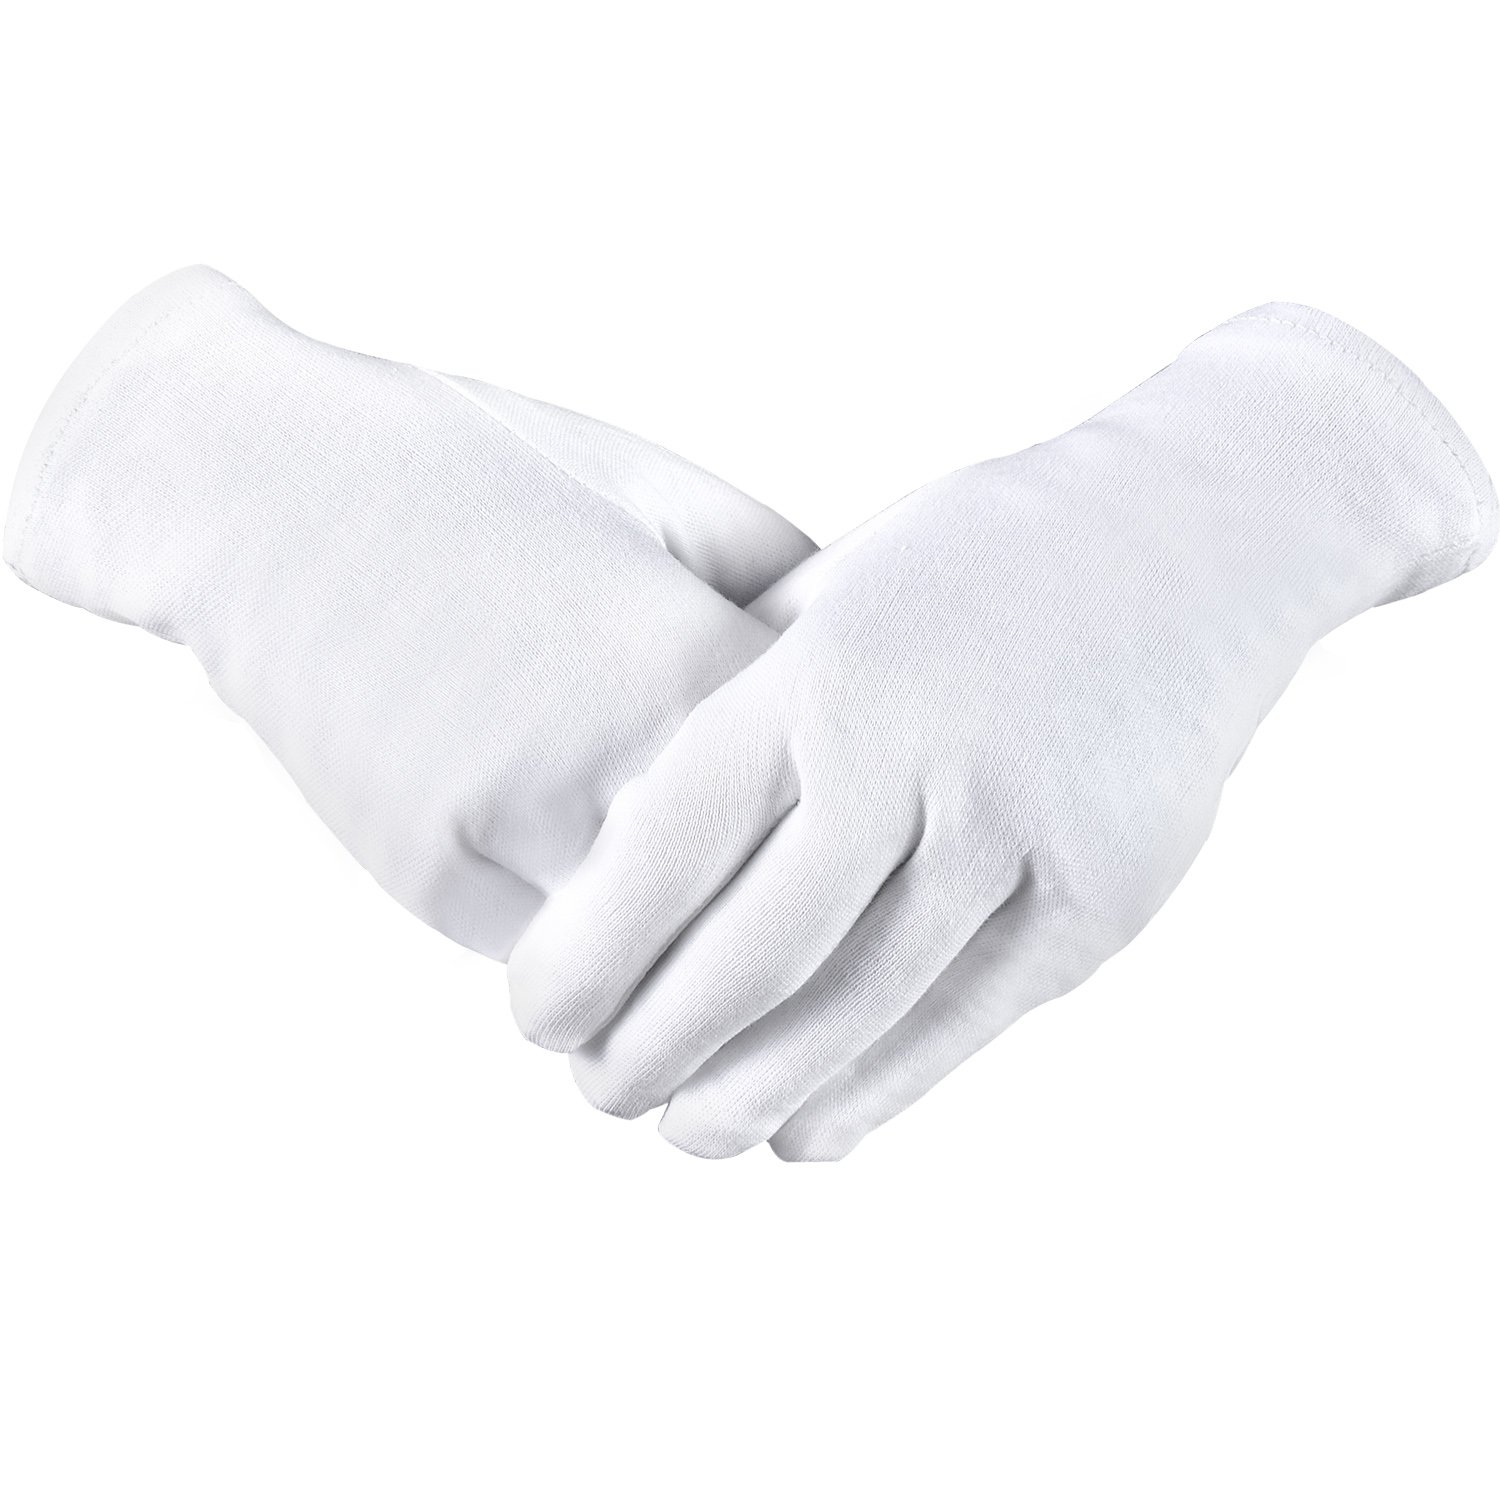 4 Pairs Cotton Gloves Moisturizing Gloves Cosmetic Hand Spa Gloves for Women and Girls, White (S Size) Hicarer